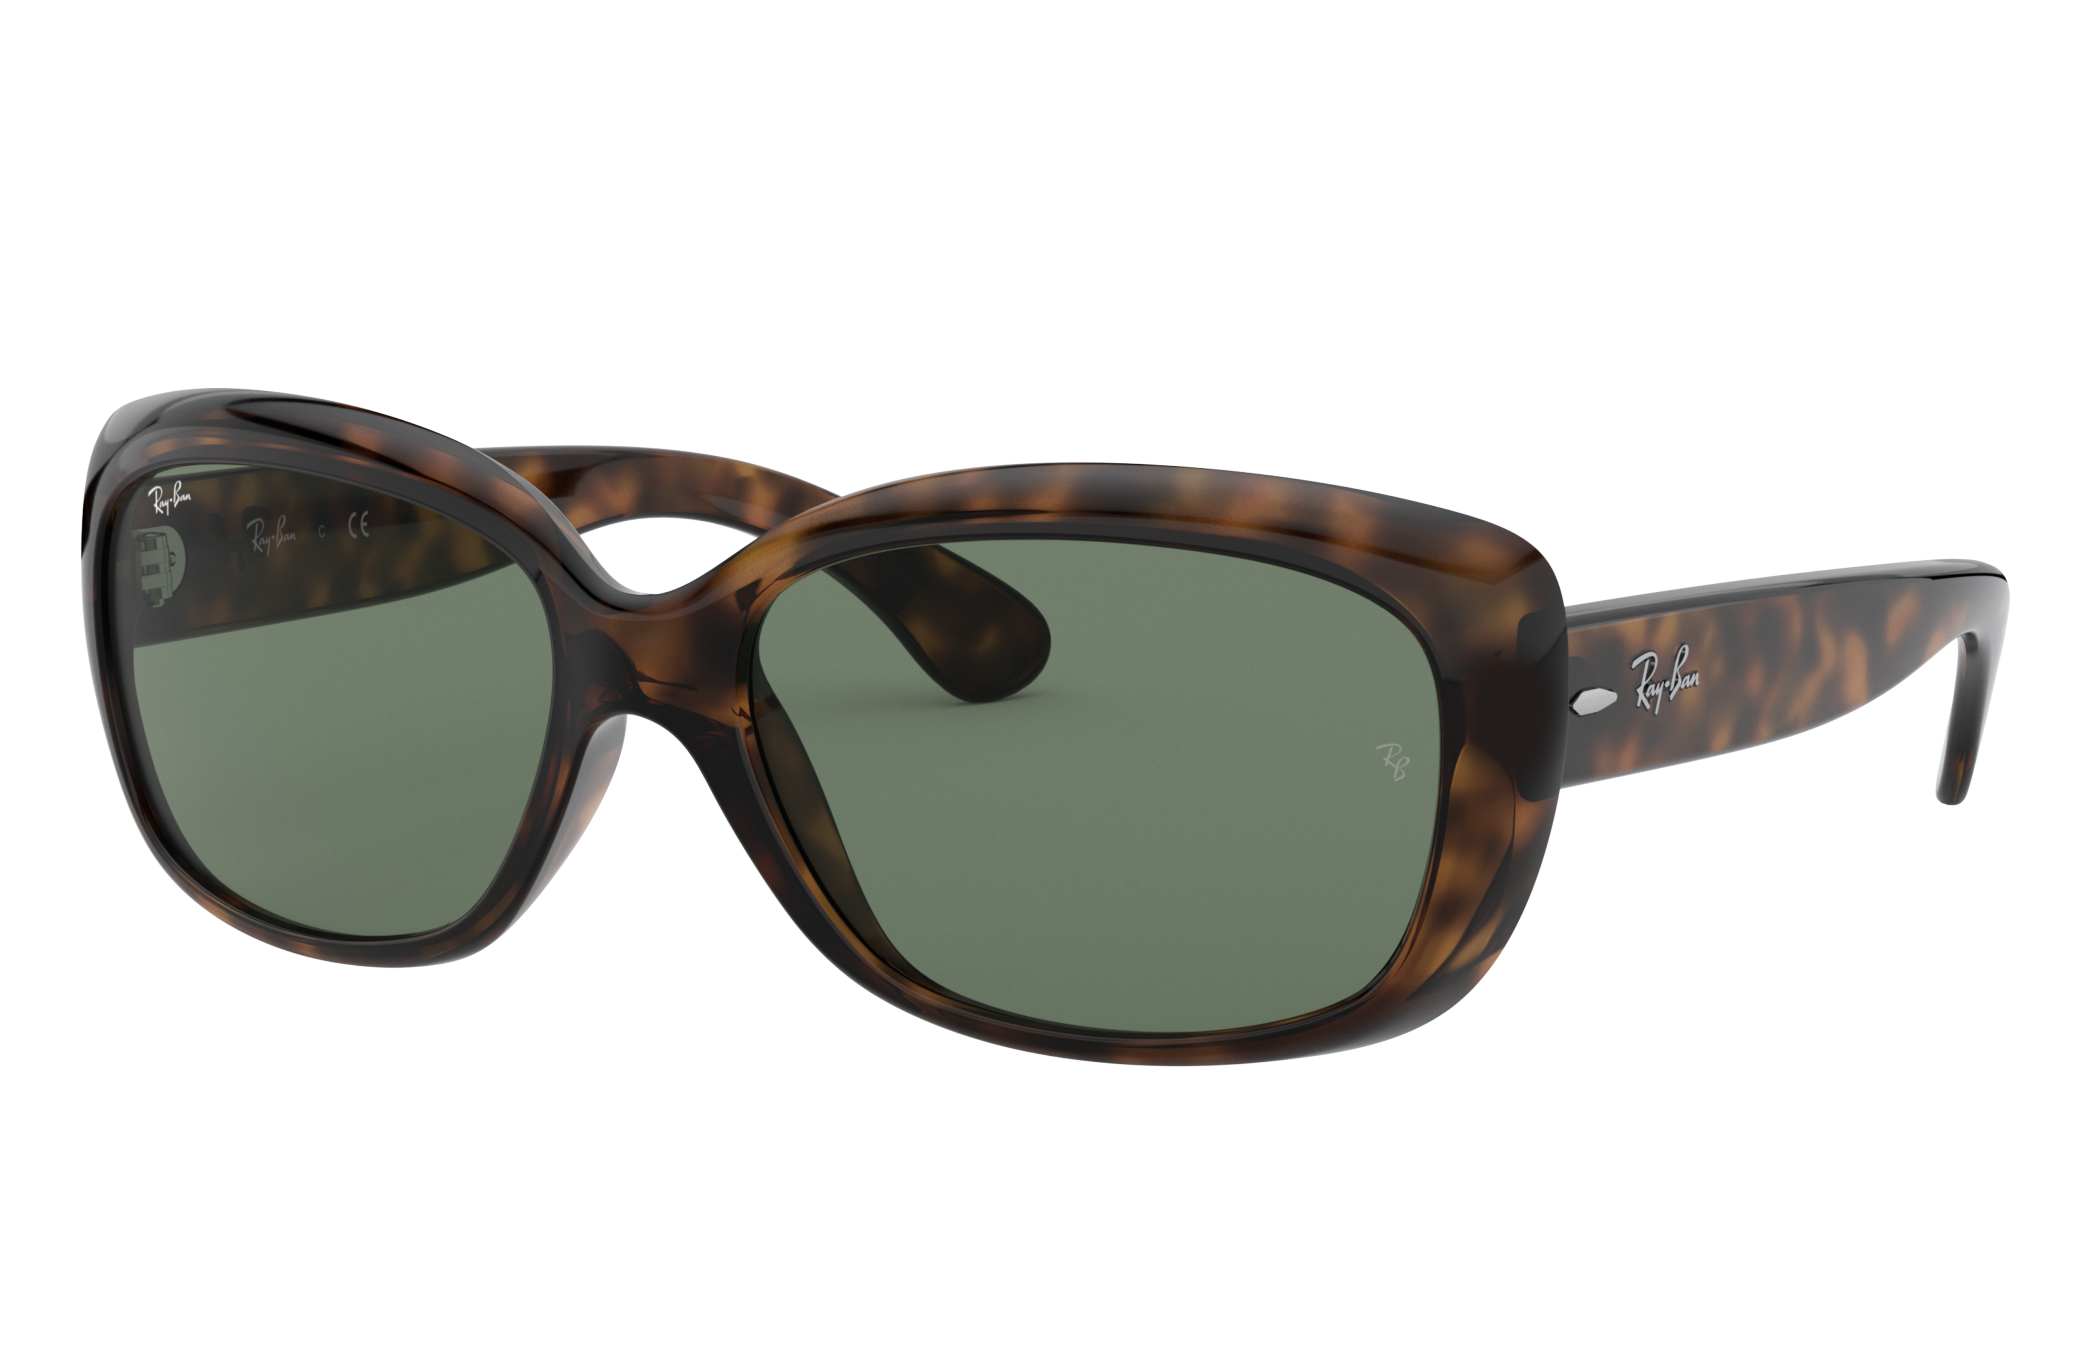 Ray-Ban Jackie Ohh Low Bridge Fit Tortoise, Green Lenses - RB4101F